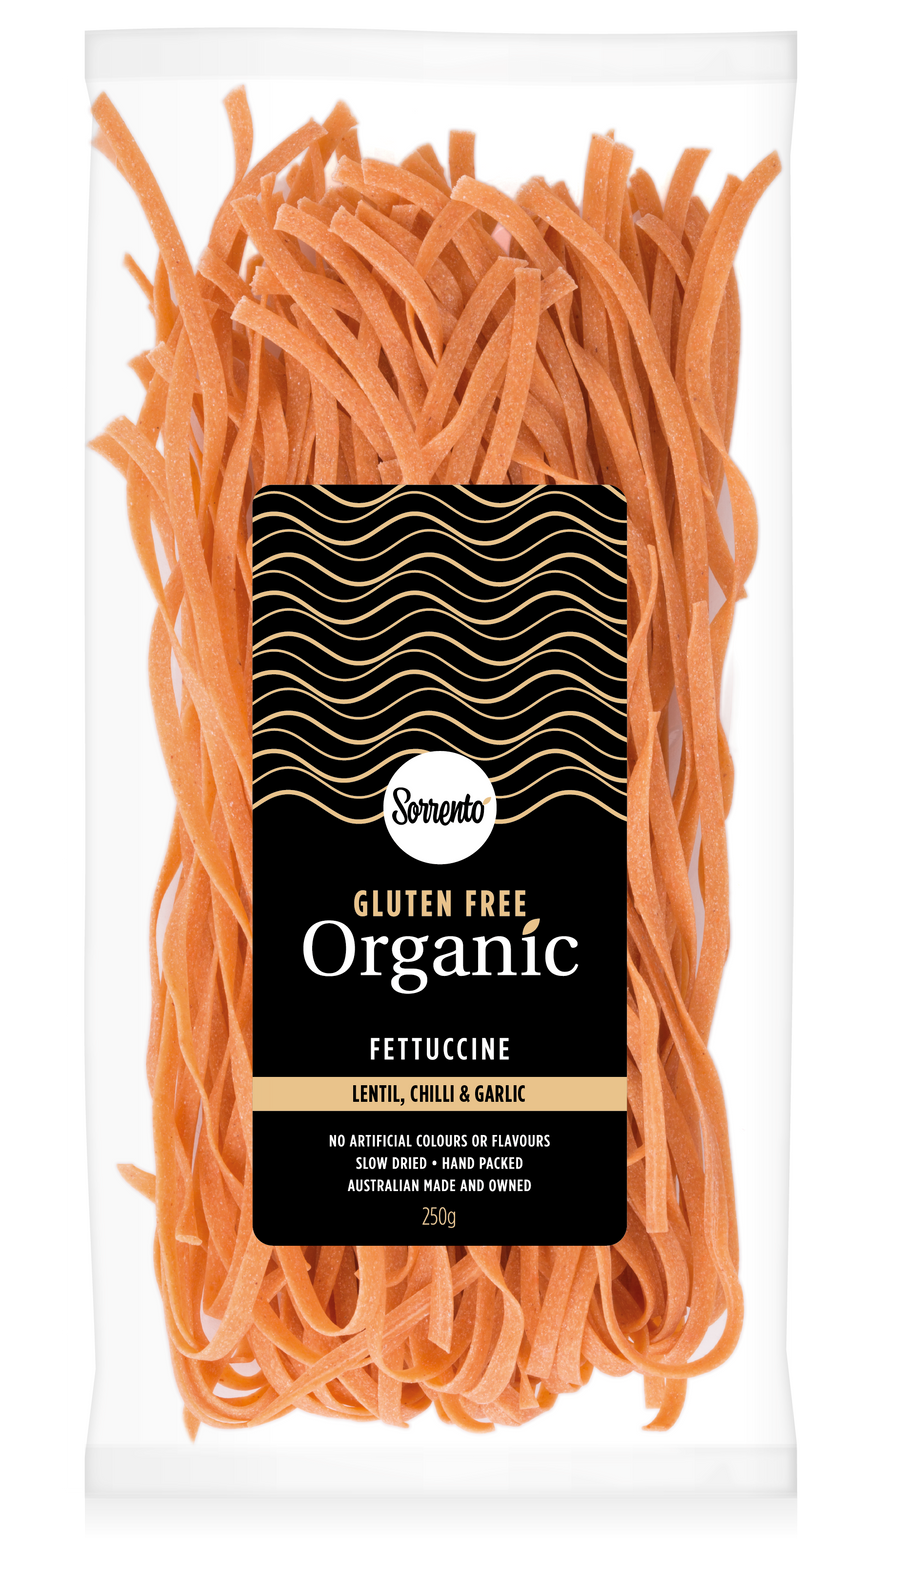 Sorrento Organic & Gluten Free Fettuccine - Bellco Group Fine Food Distributers